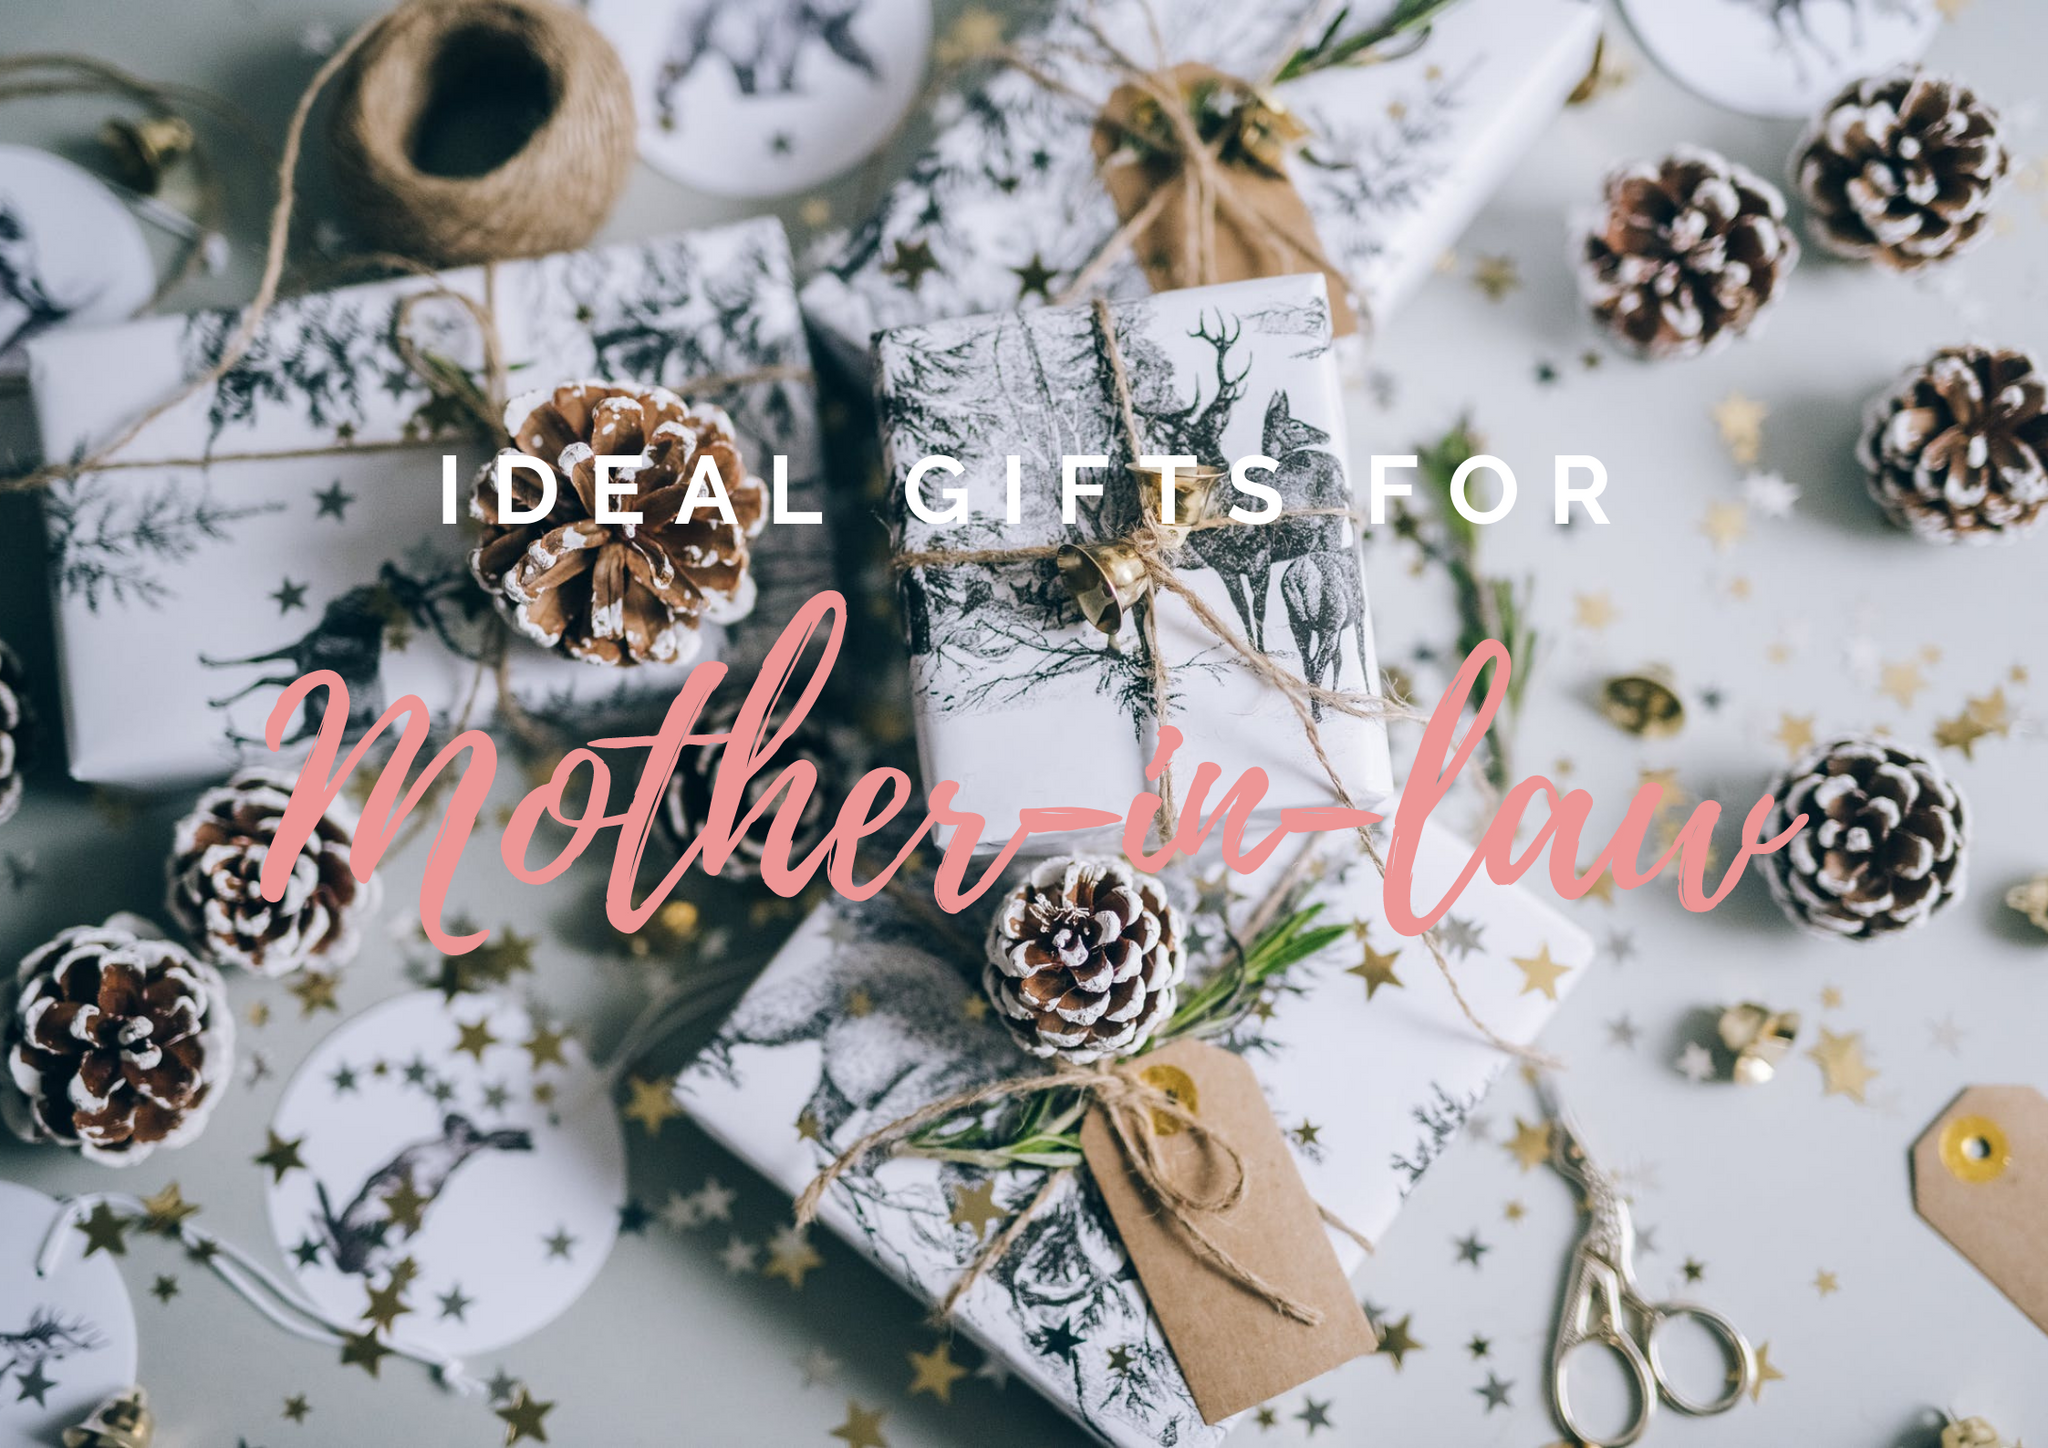 Personalized Mother-In-Law Gifts